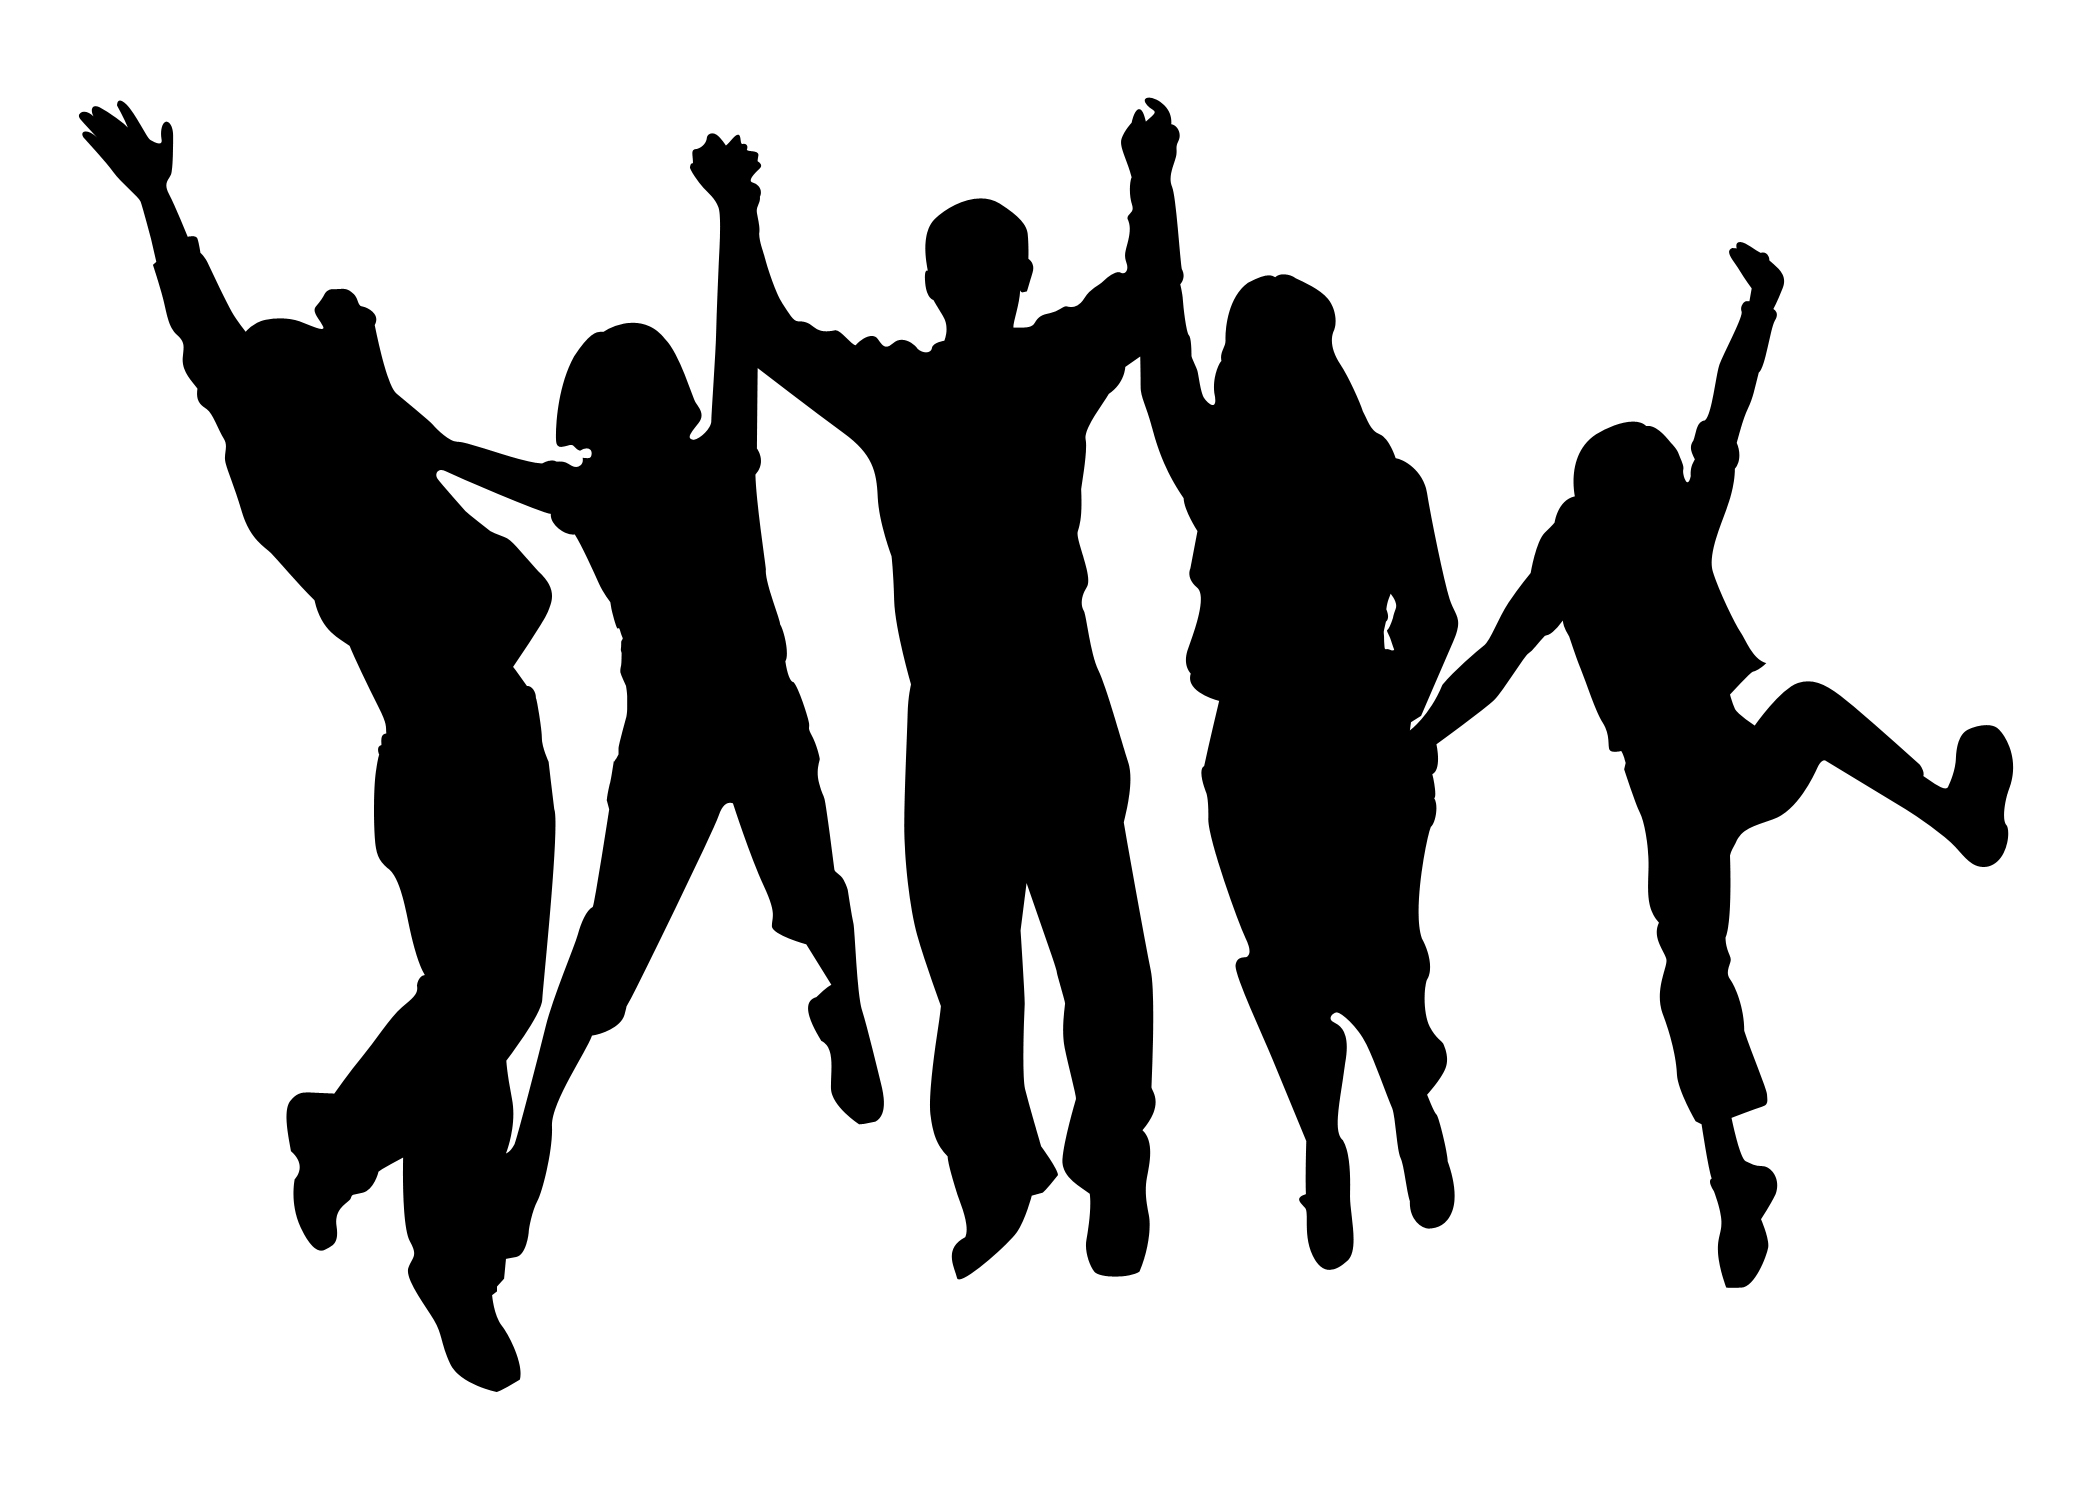 Person clipart shadow. Cheering family free images